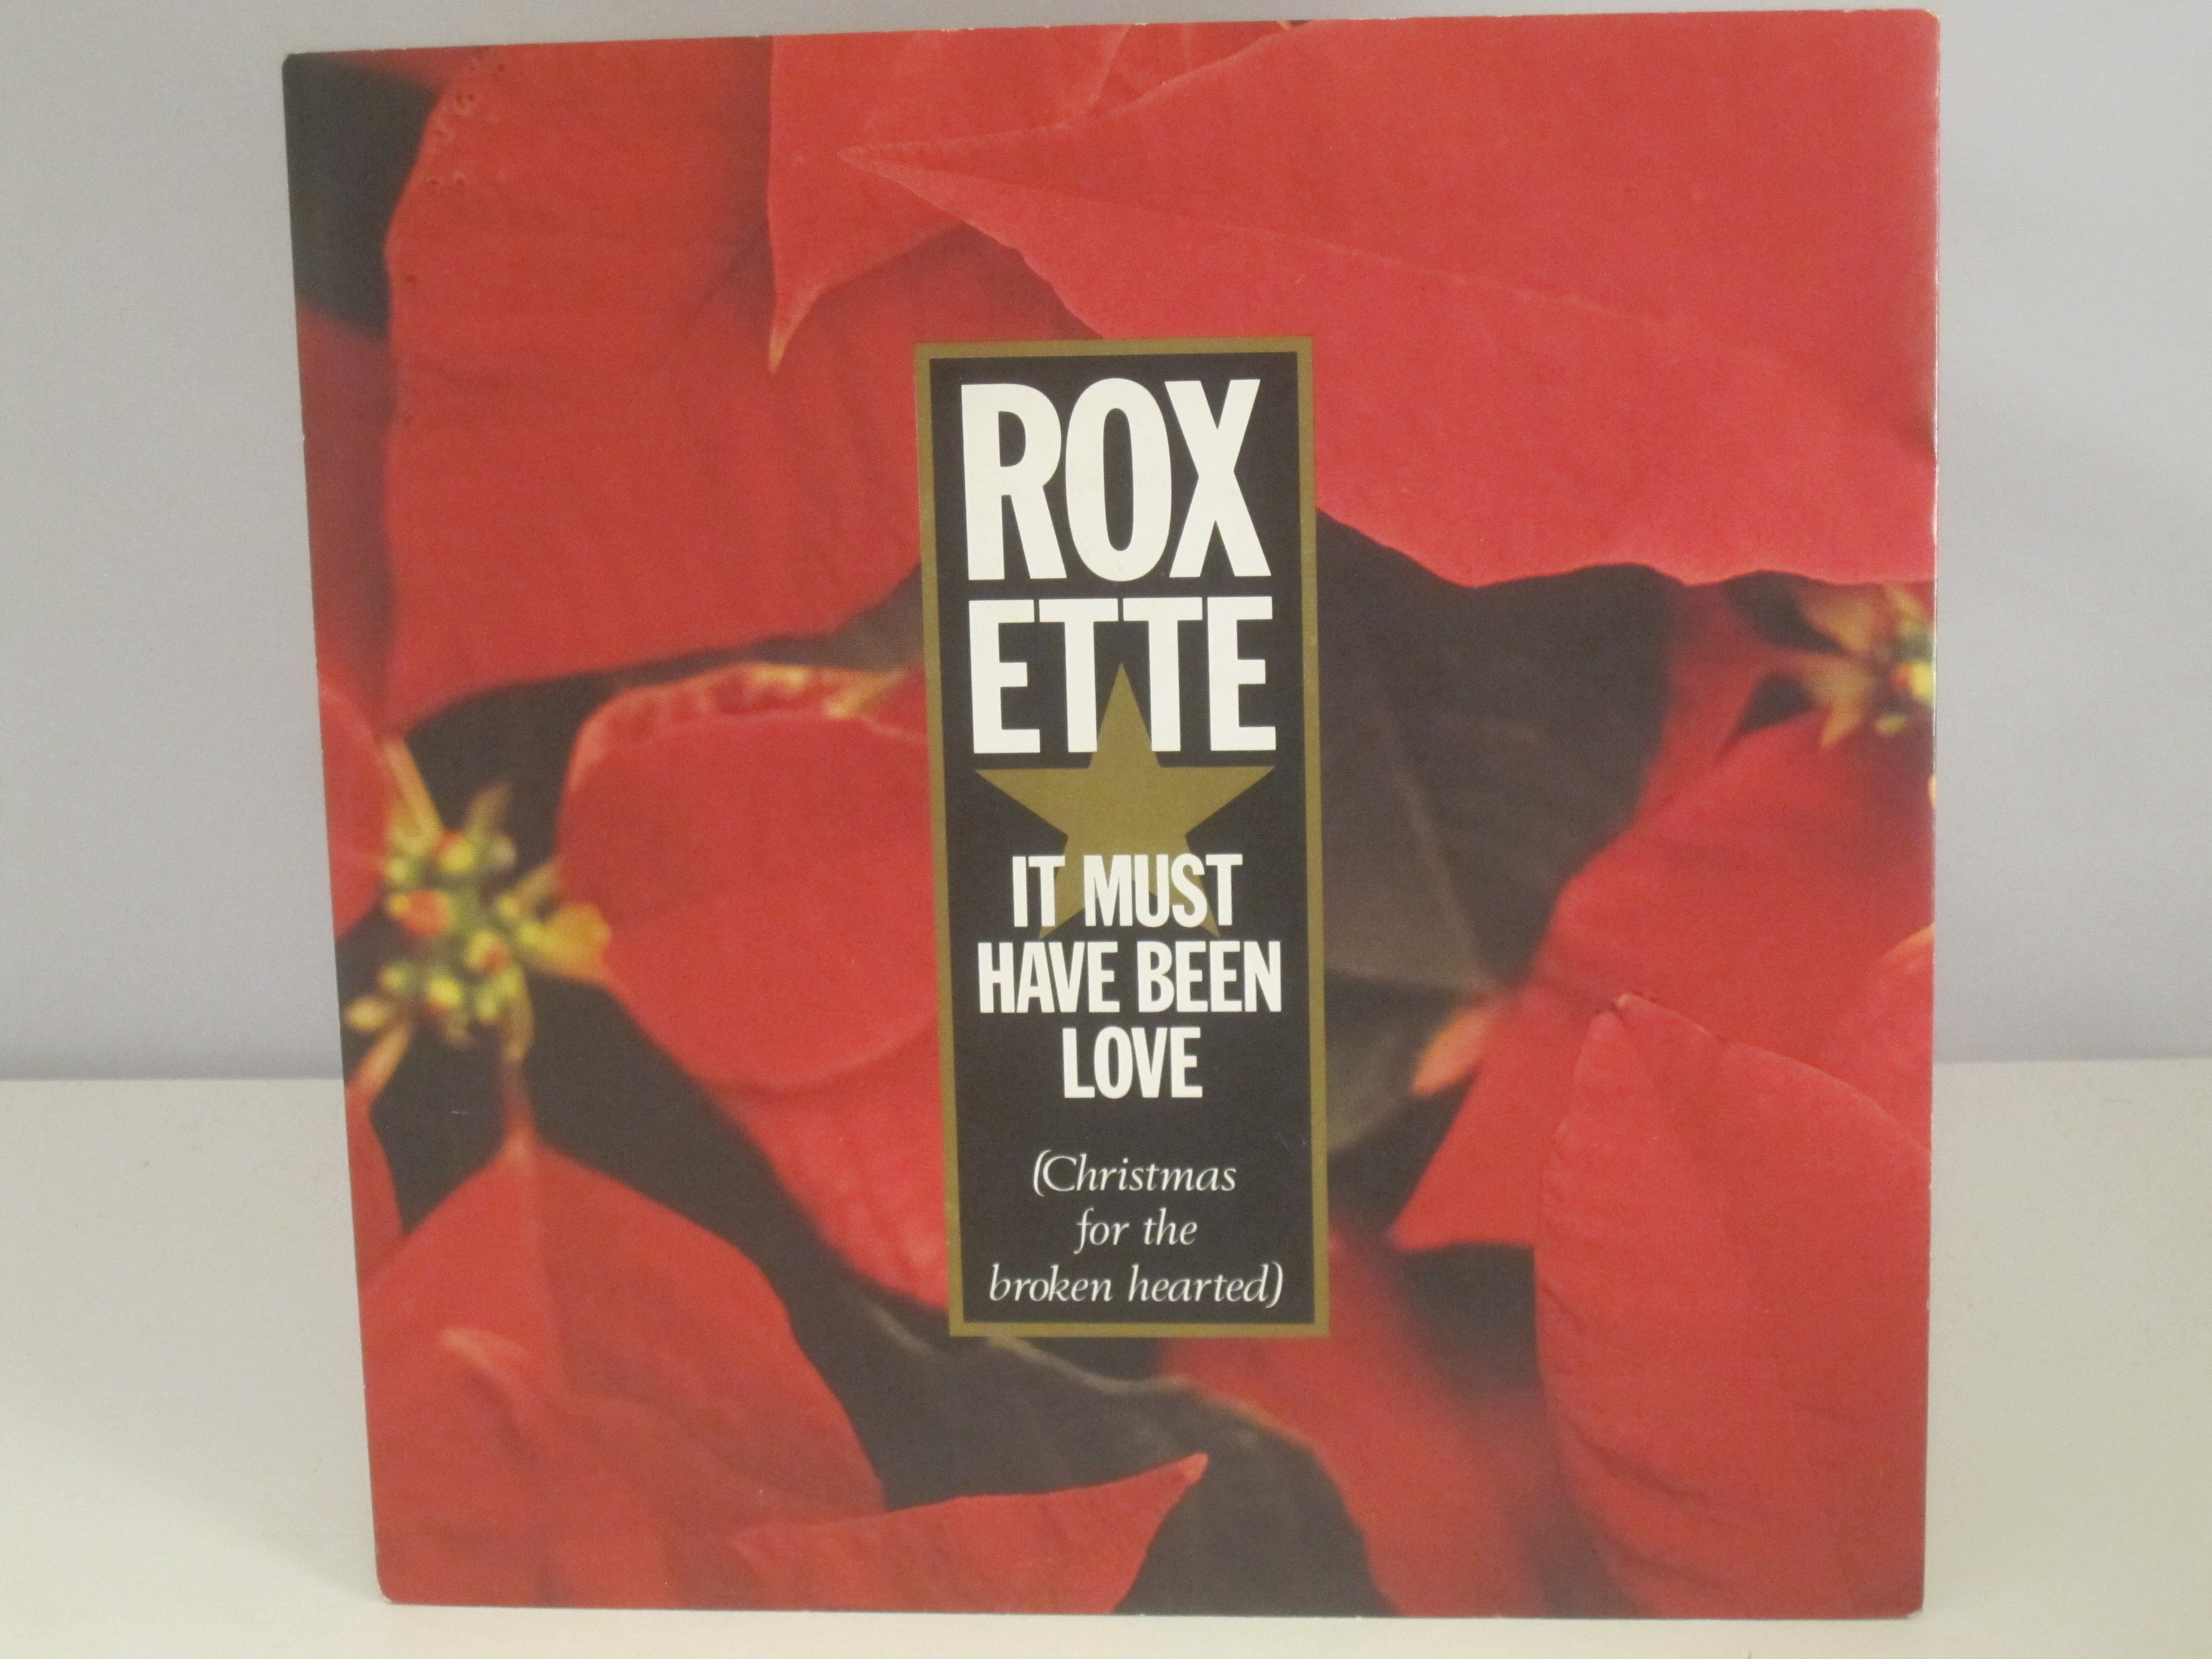 ROXETTE : It must have been love / Turn to me